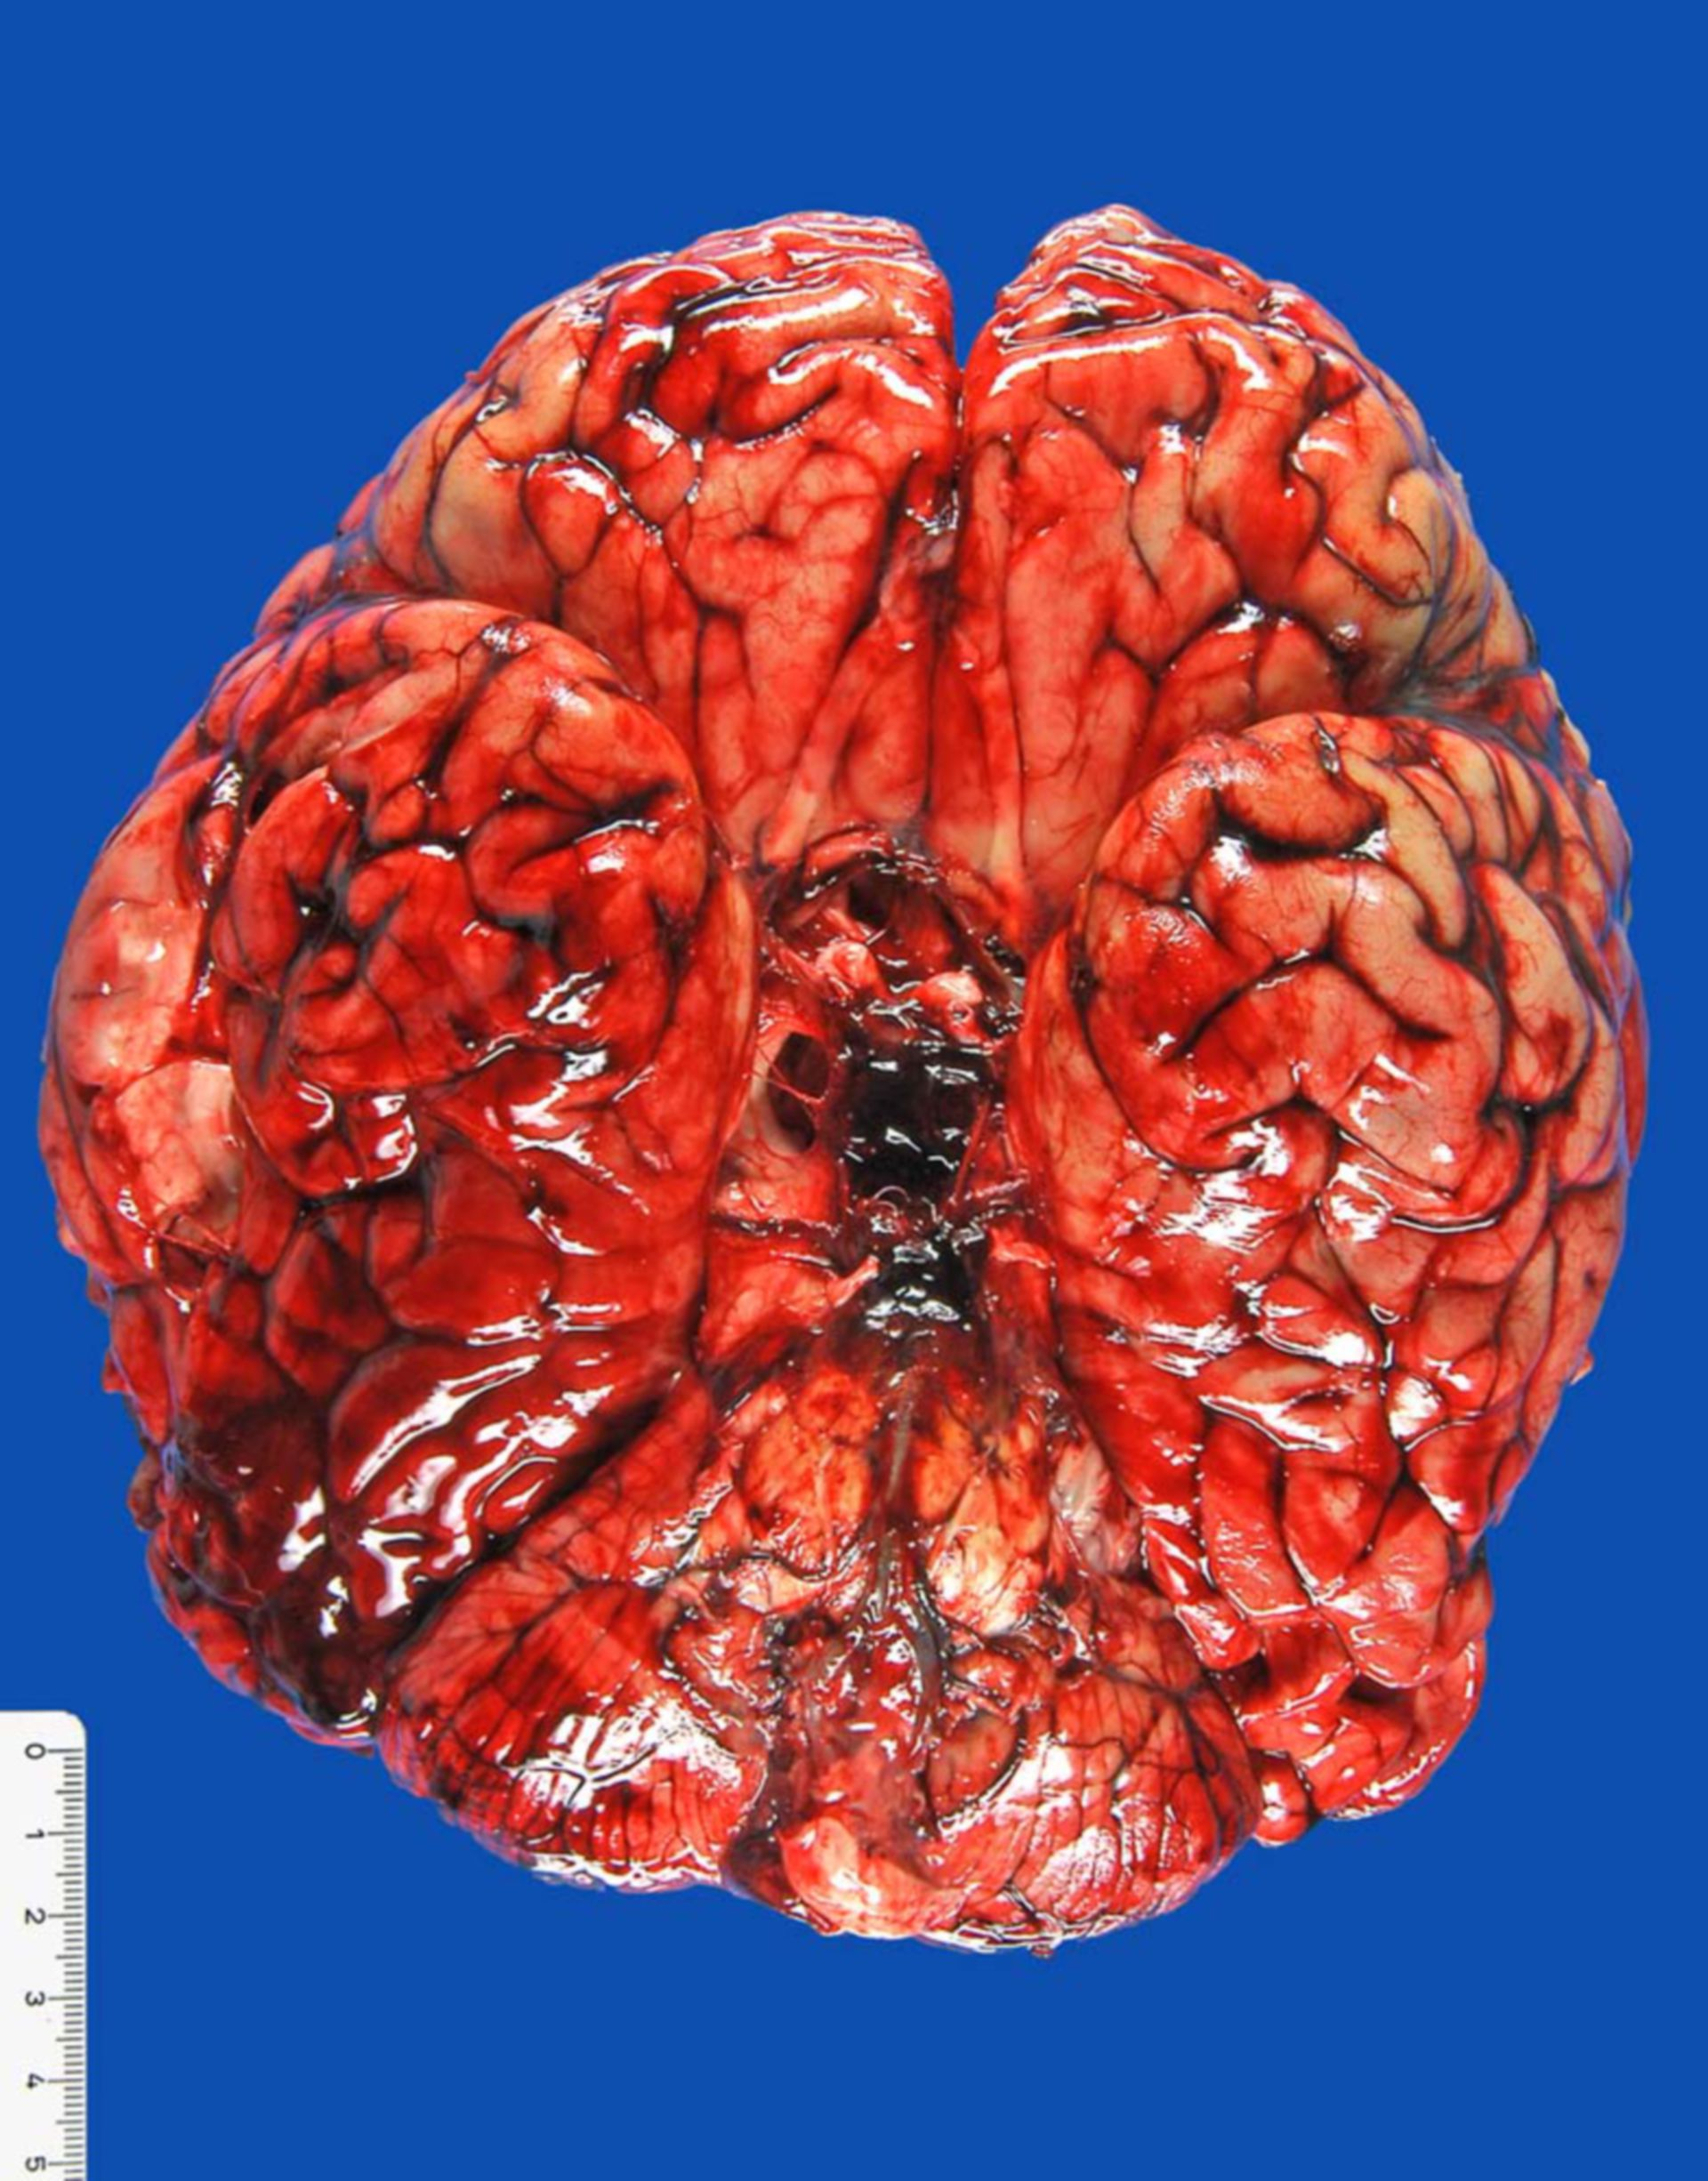 Ruptured aneurysm of the base of the brain, with subarachnoid hemorrhage